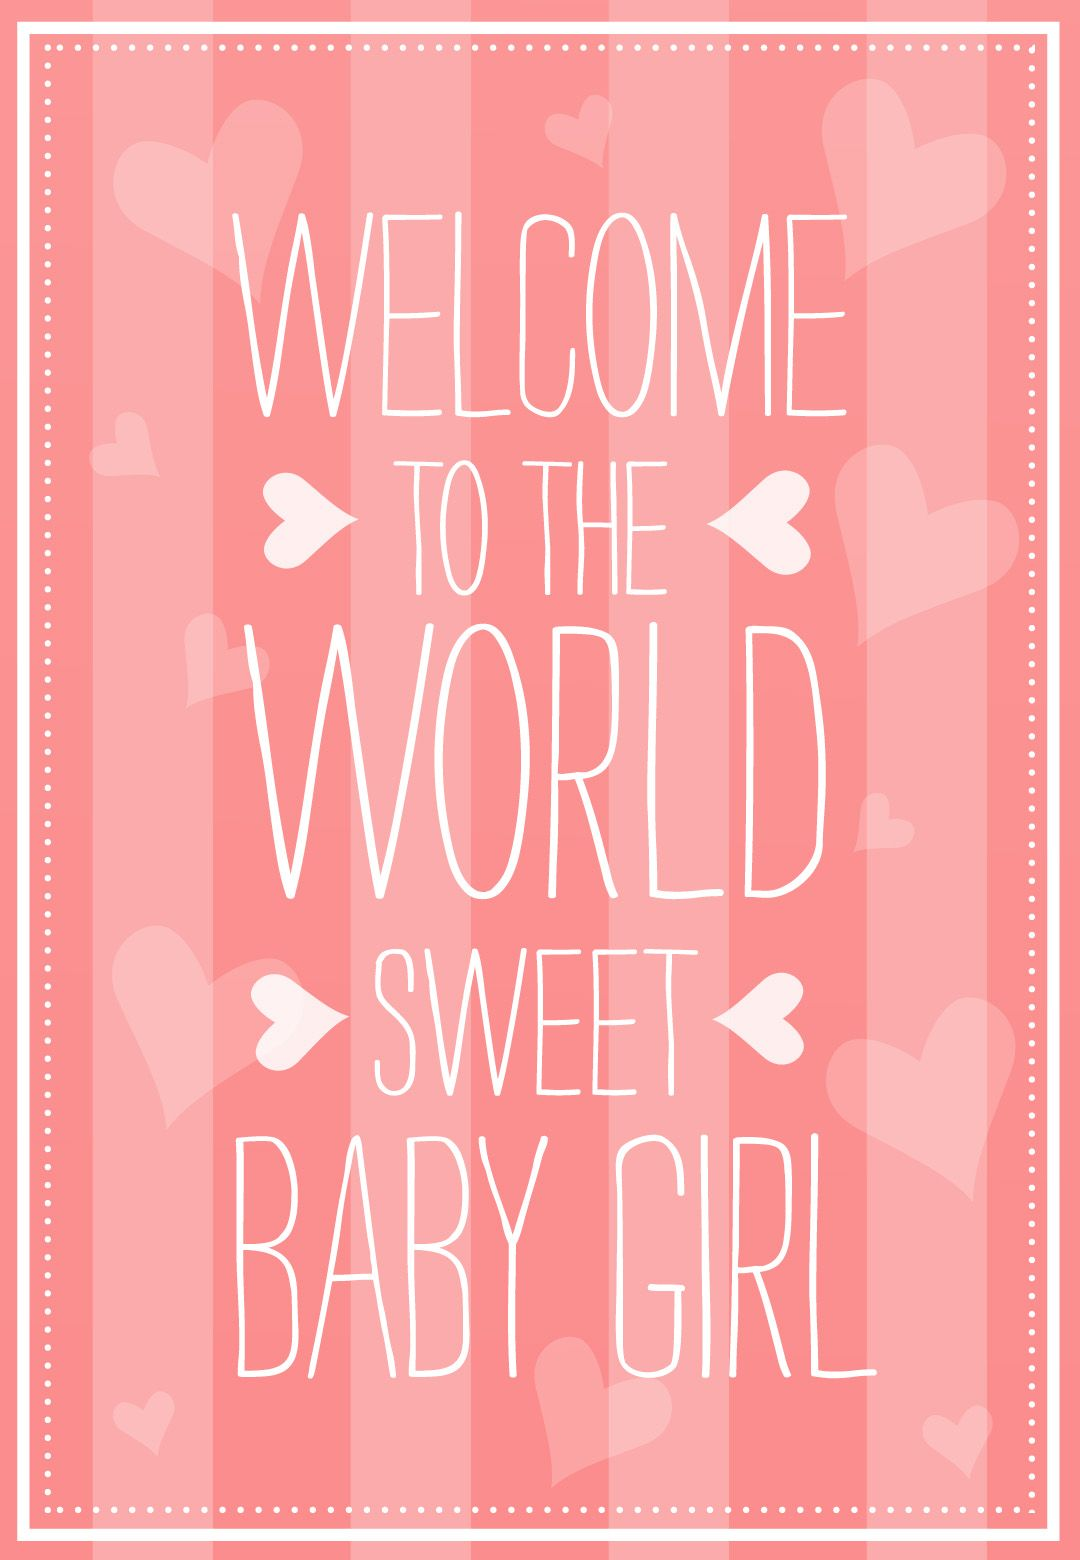 Welcome To The World Free Baby Shower New Baby Card Greetings Island New Baby Cards Welcome Baby Girl Quotes Congratulations Baby